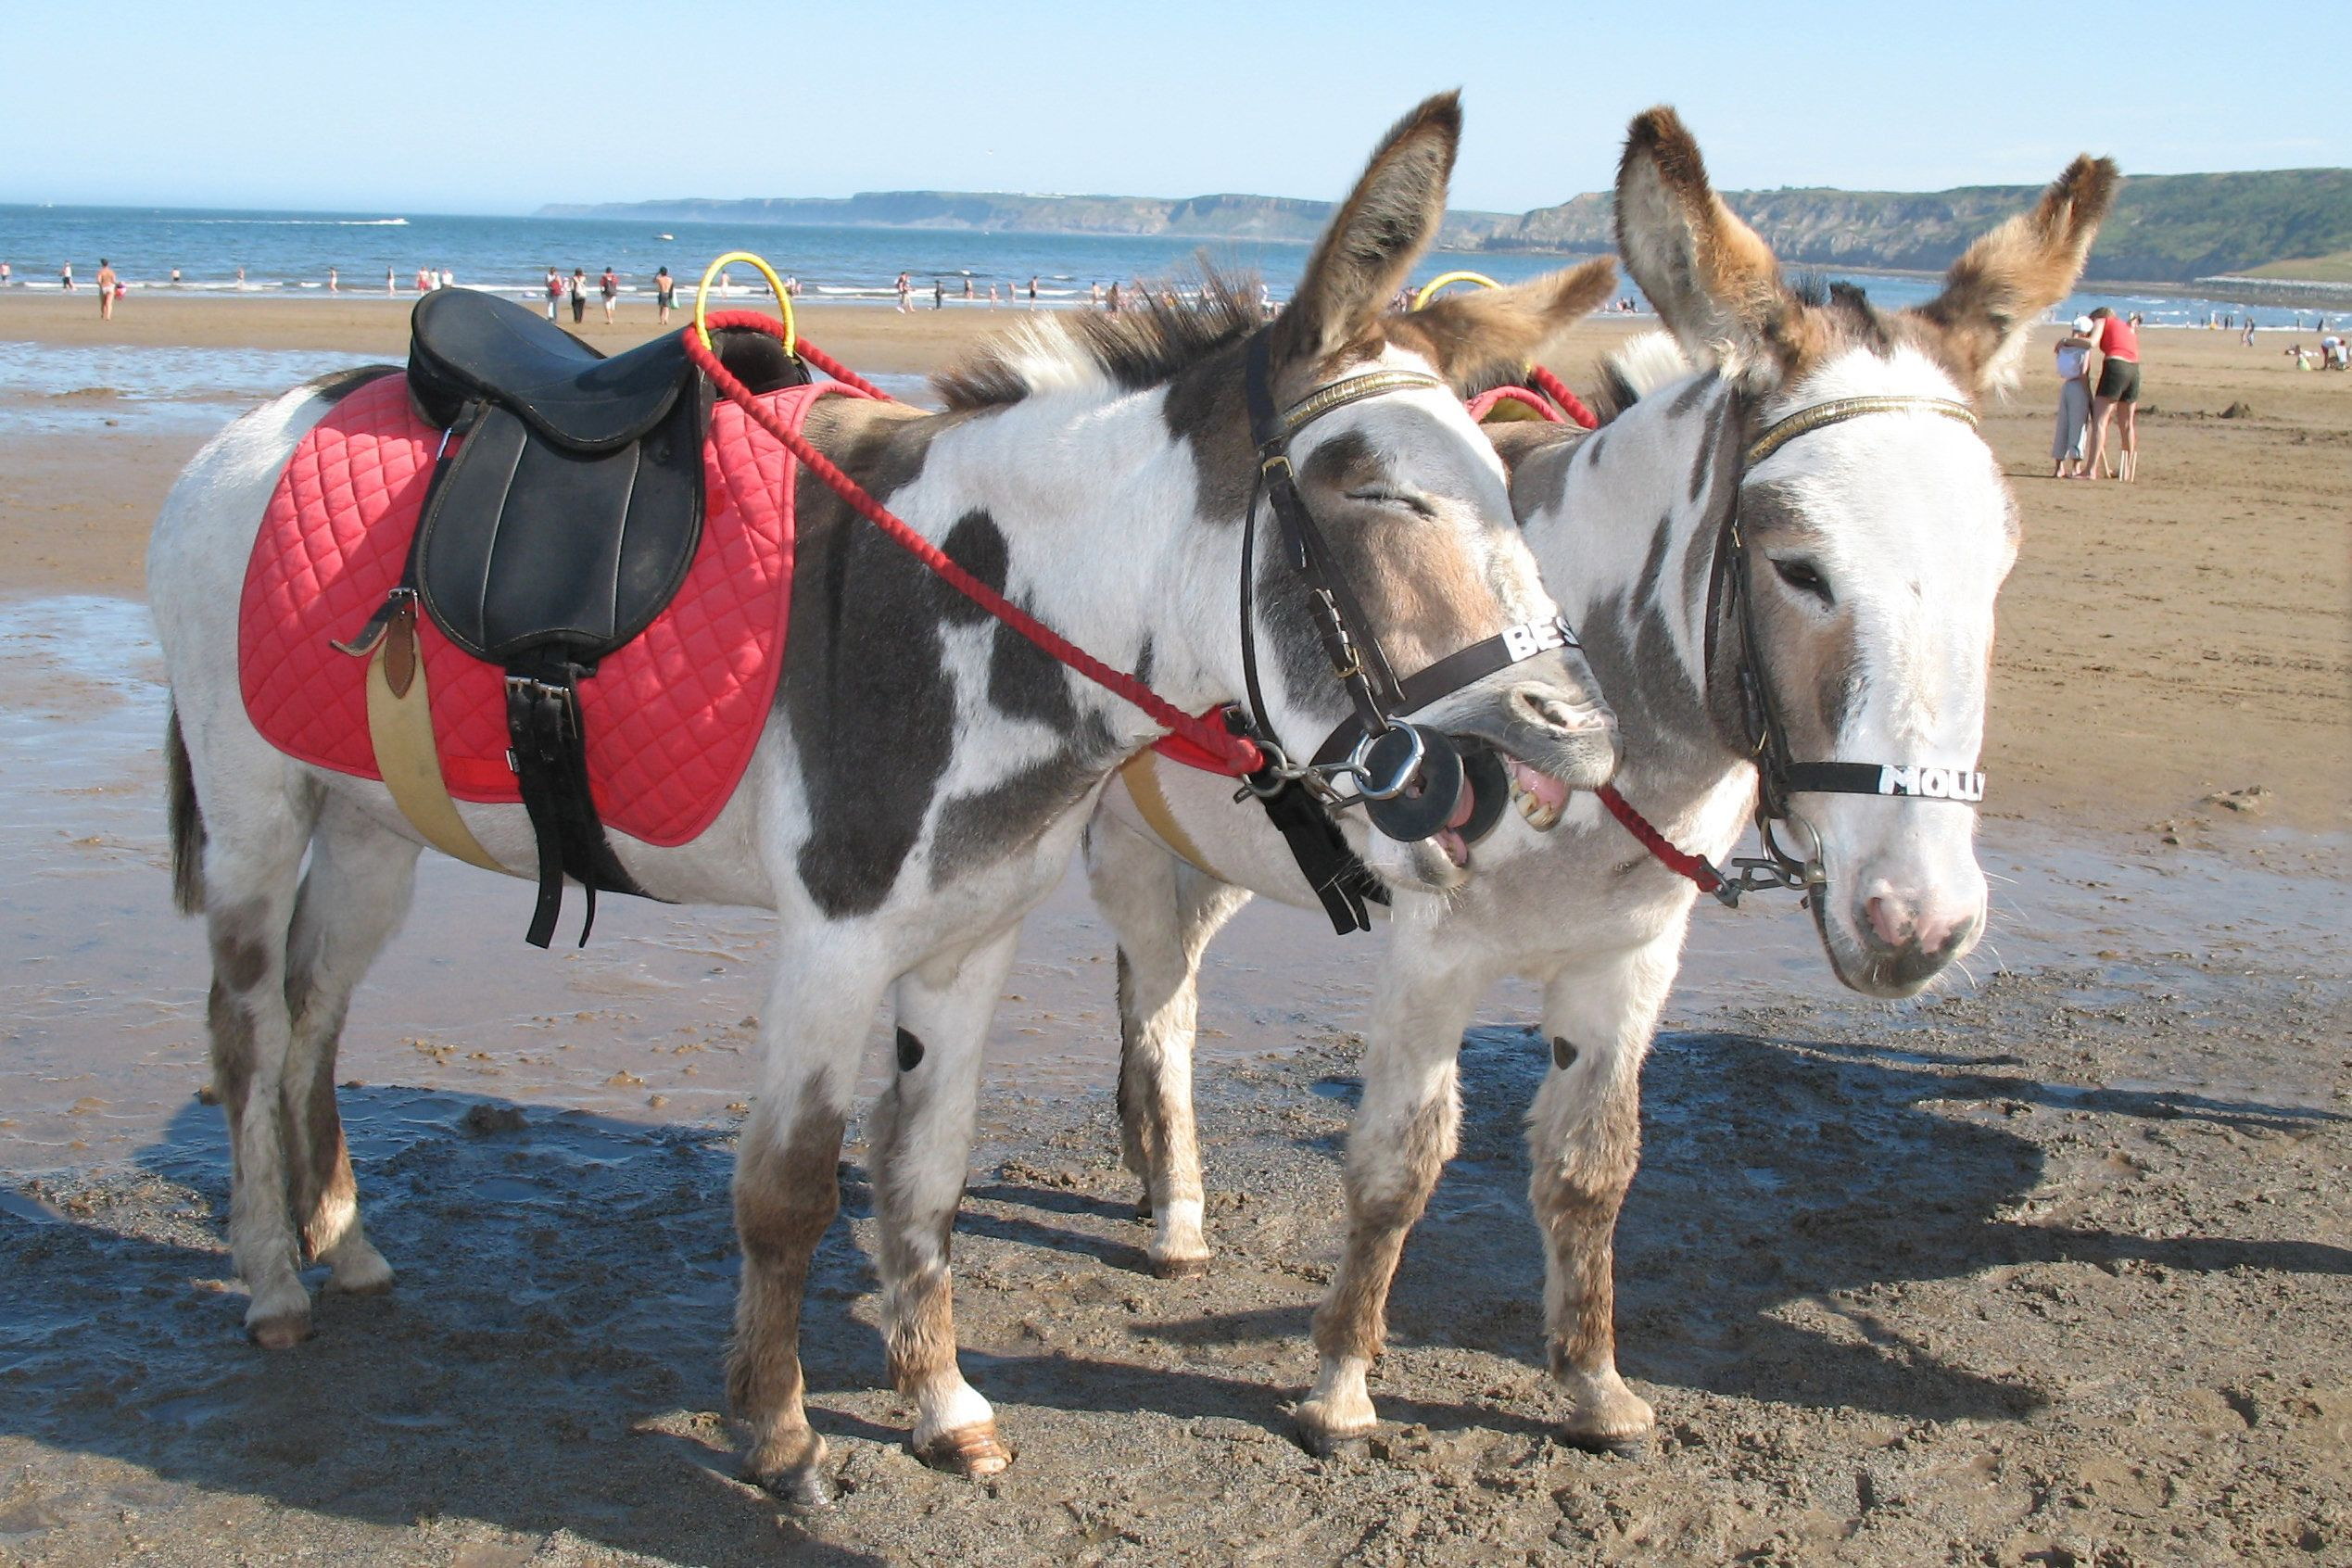 Two Donkeys on the beach.  One of the Donkeys is braying.